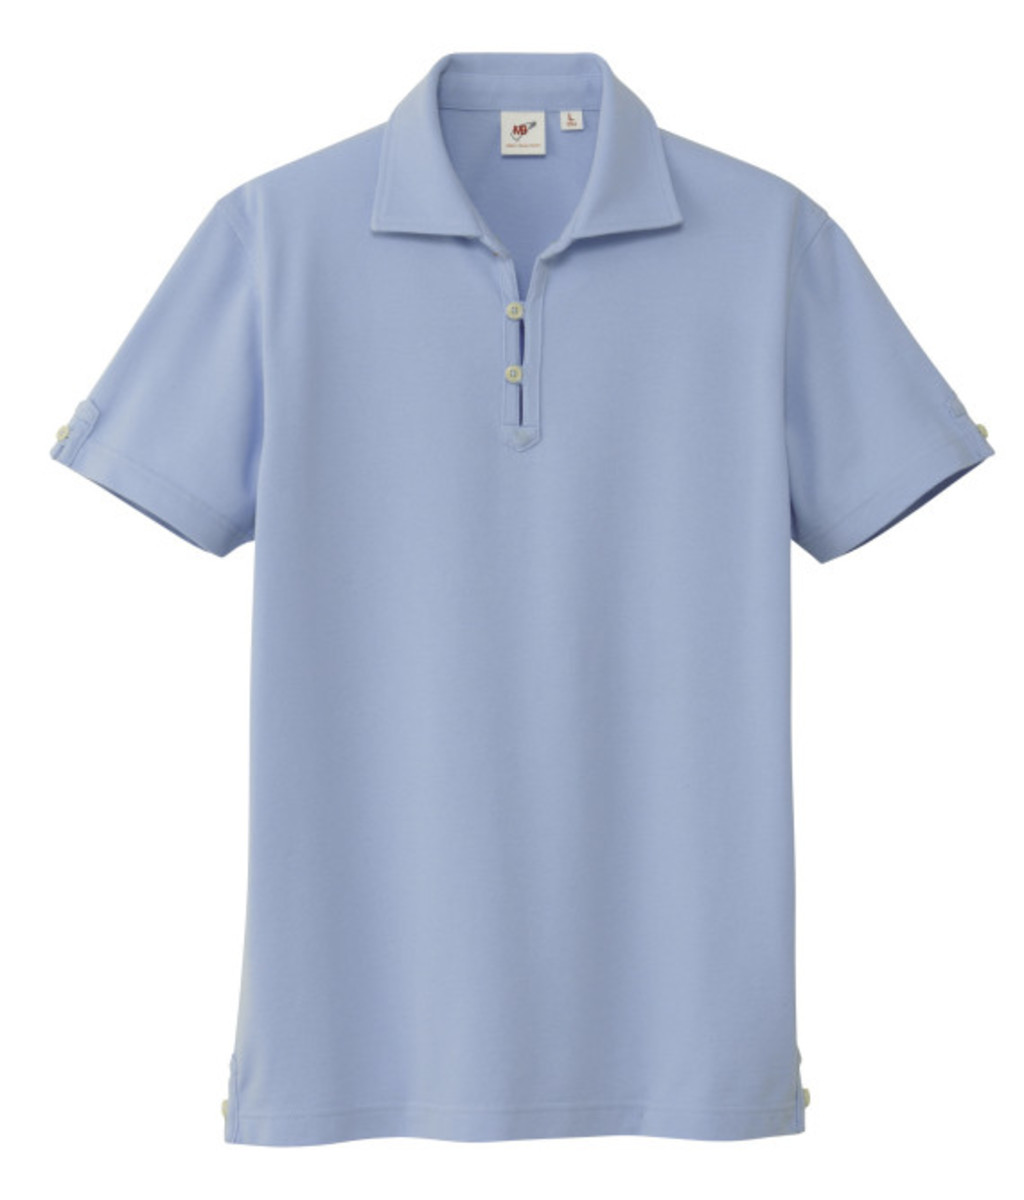 michael-bastian-x-uniqlo-mens-polo-shirt-collection-2013-03